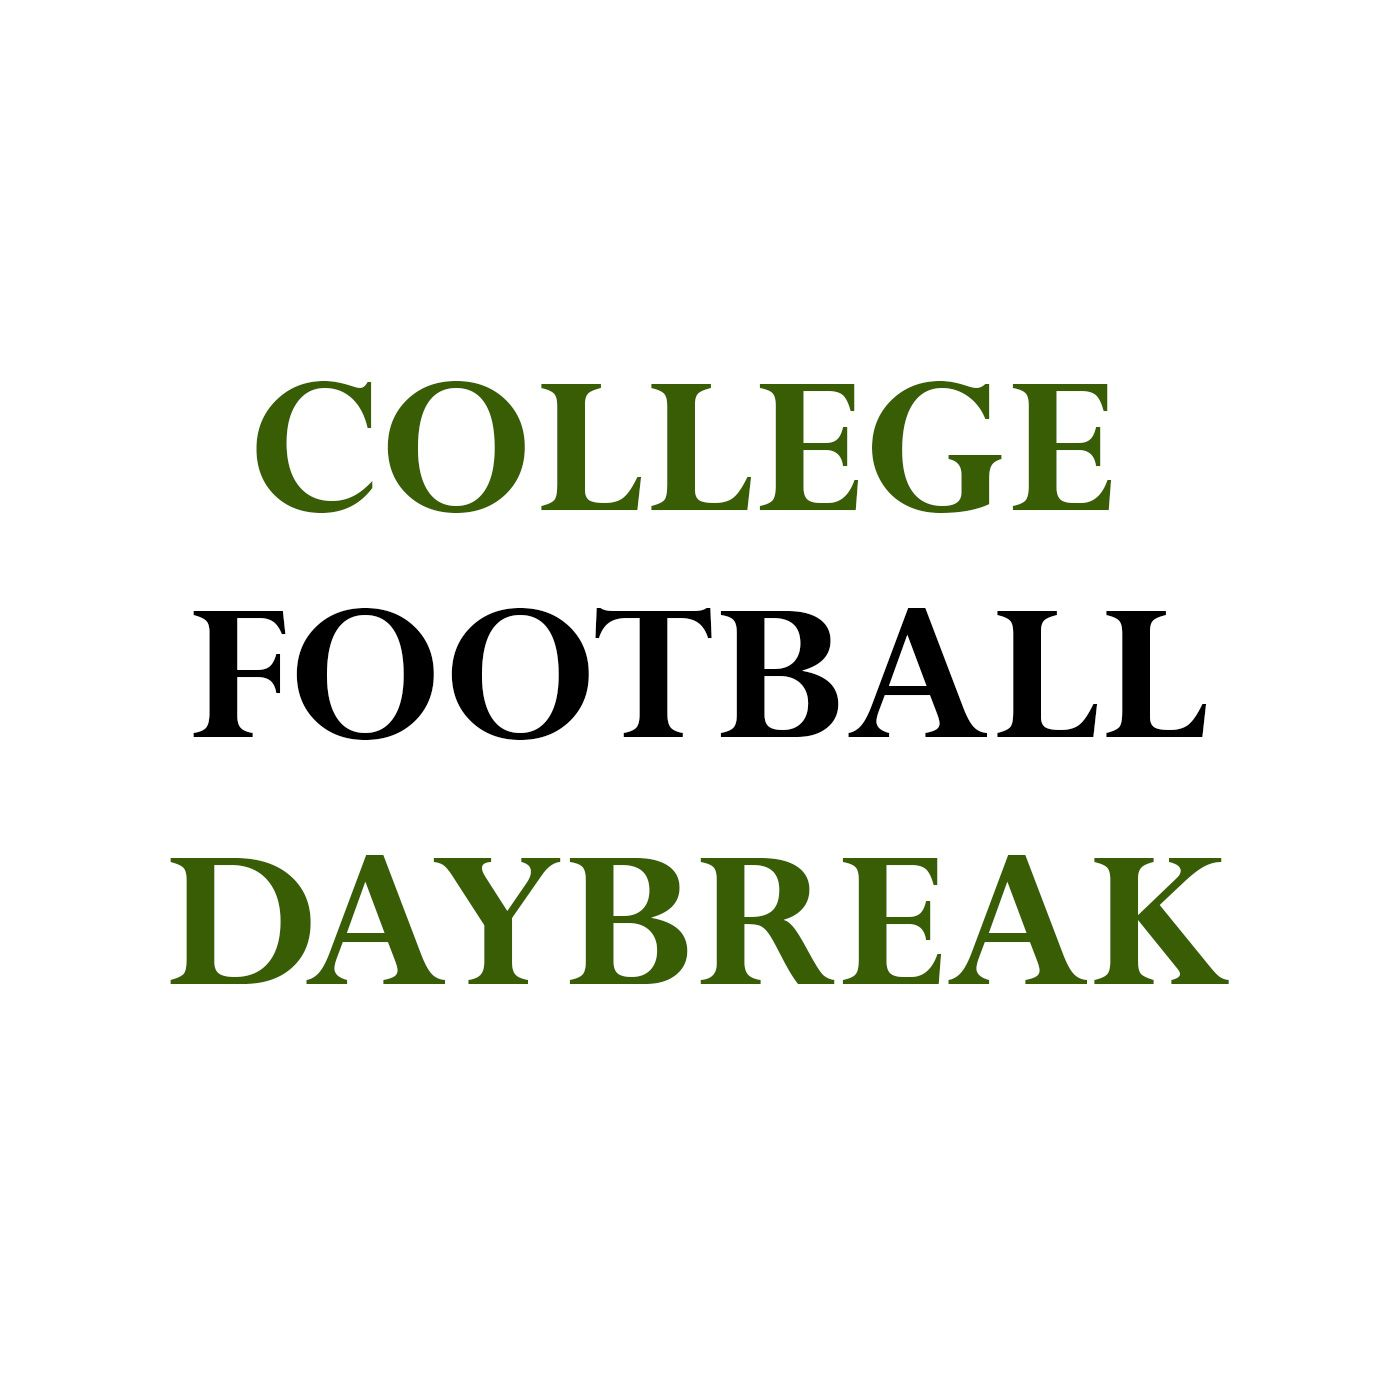 College Football Daybreak